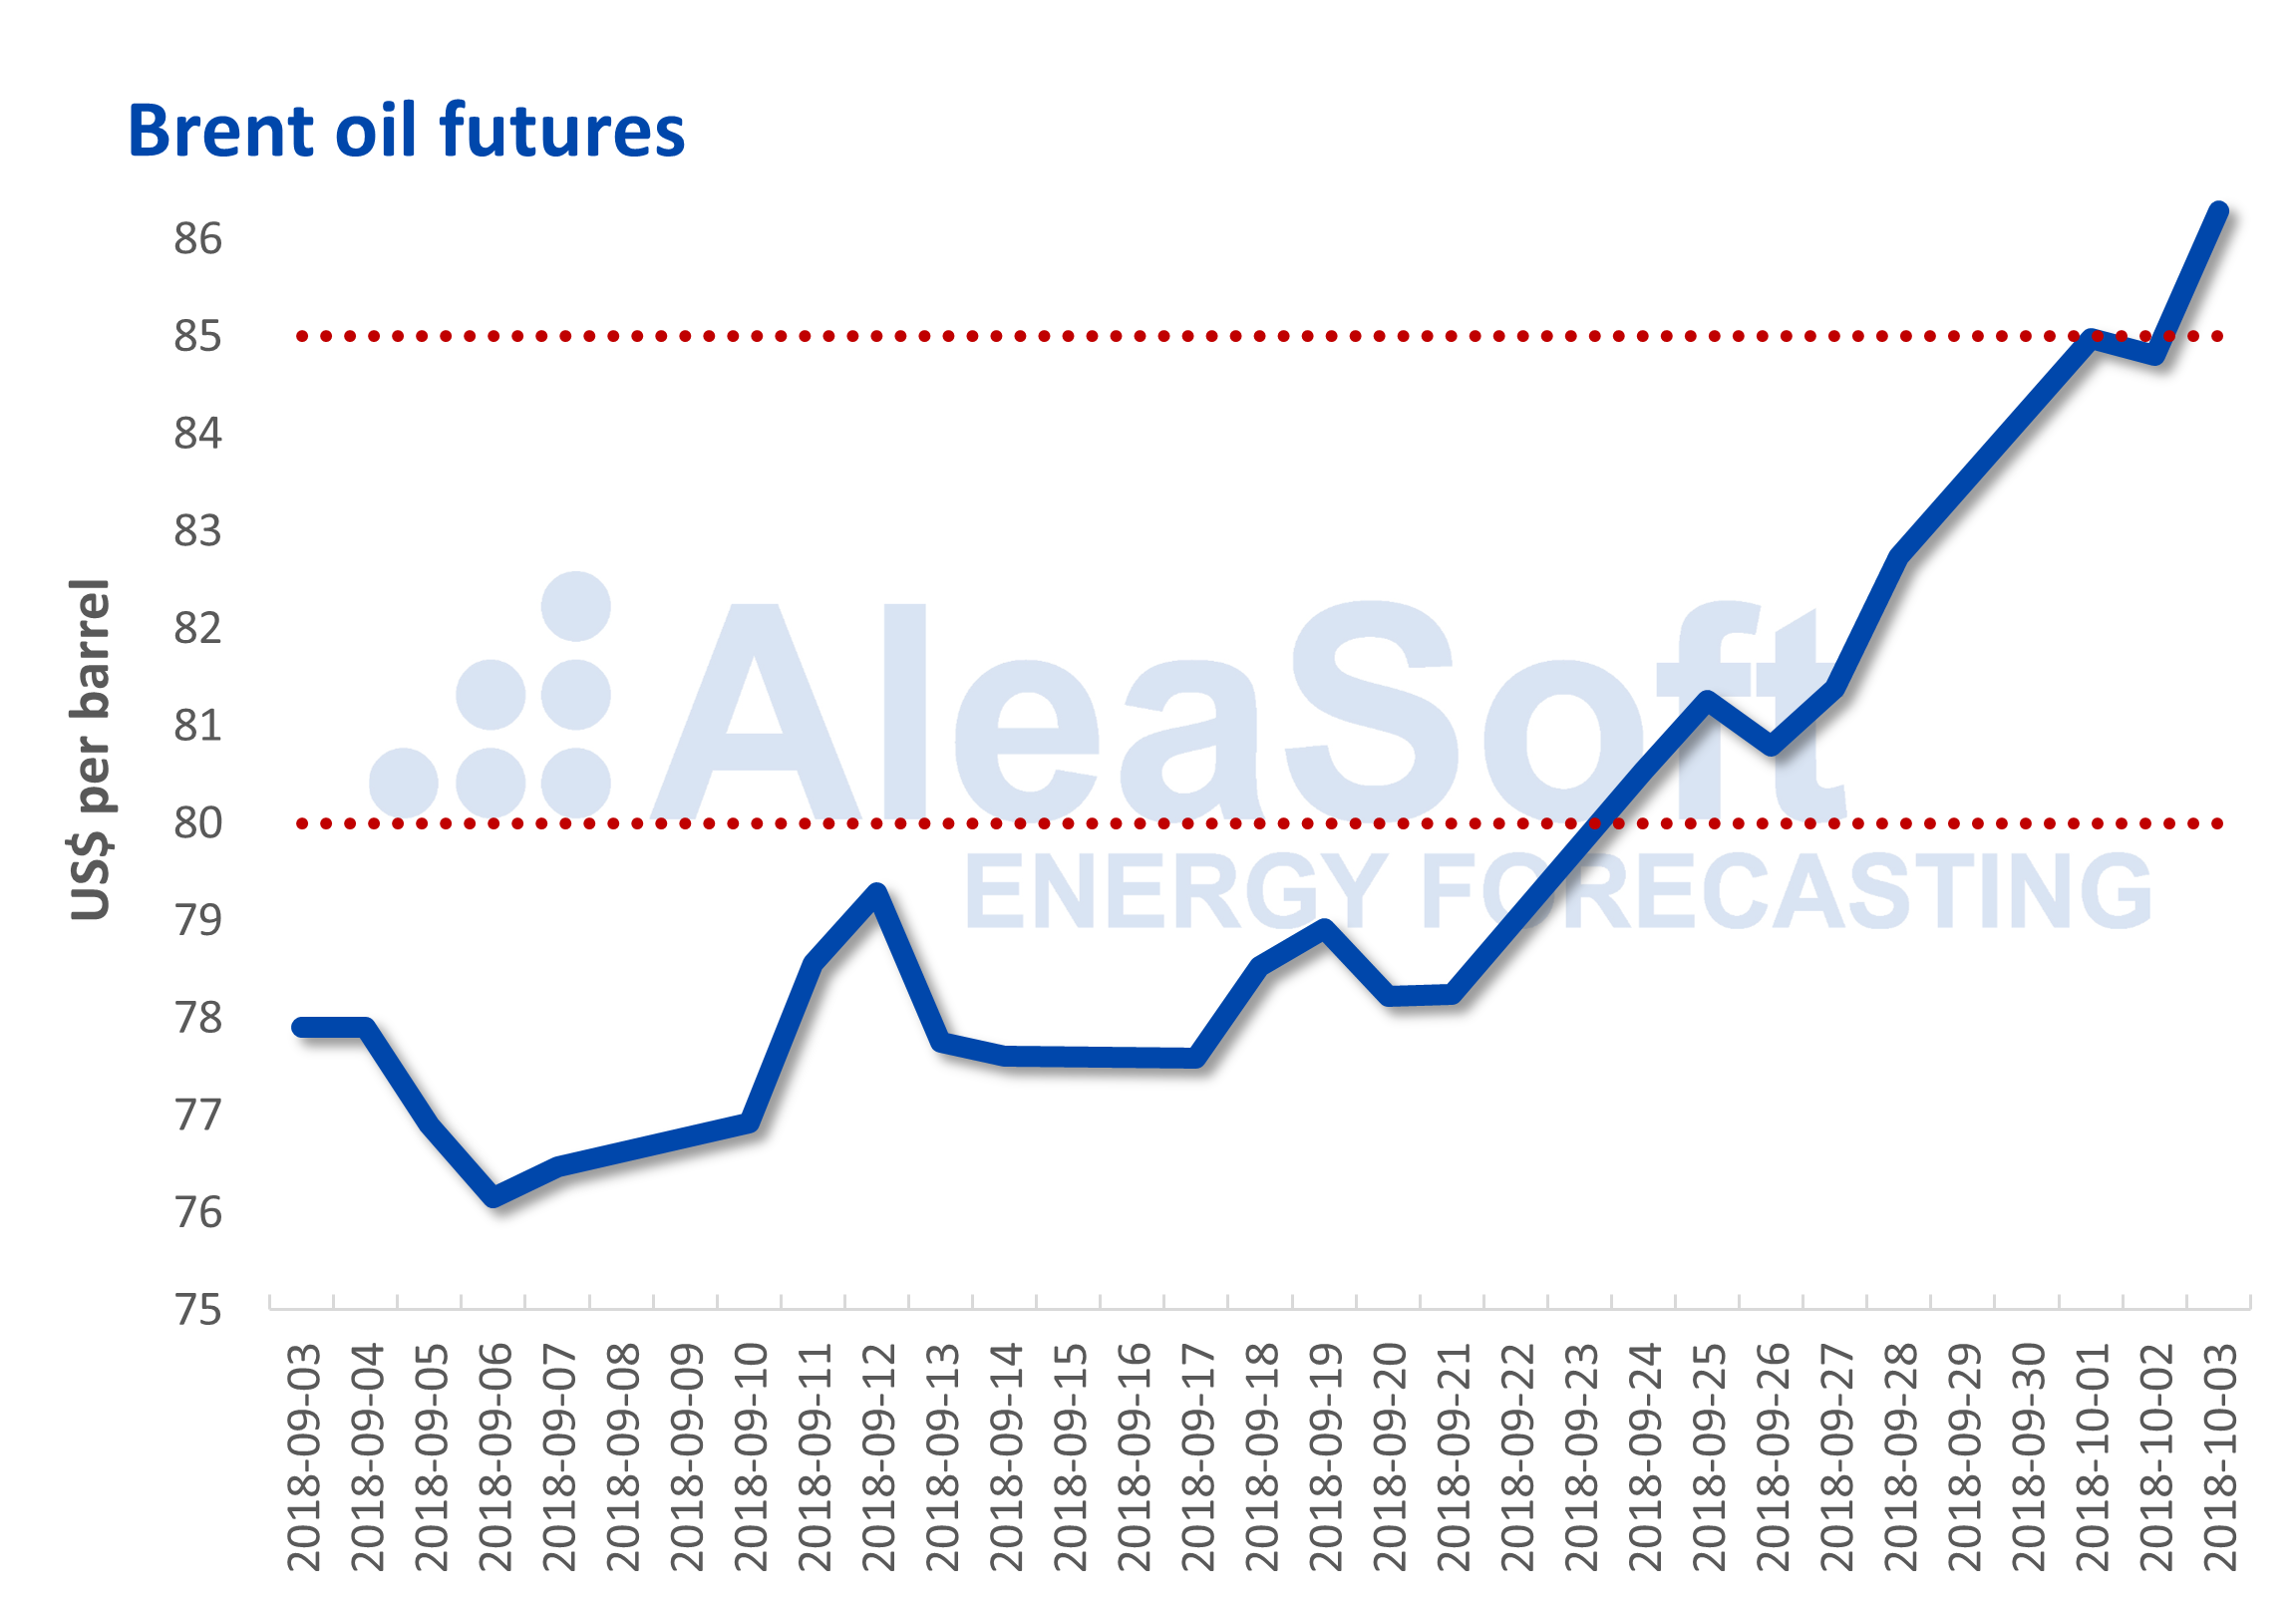 AleaSoft - Brent oil future prices